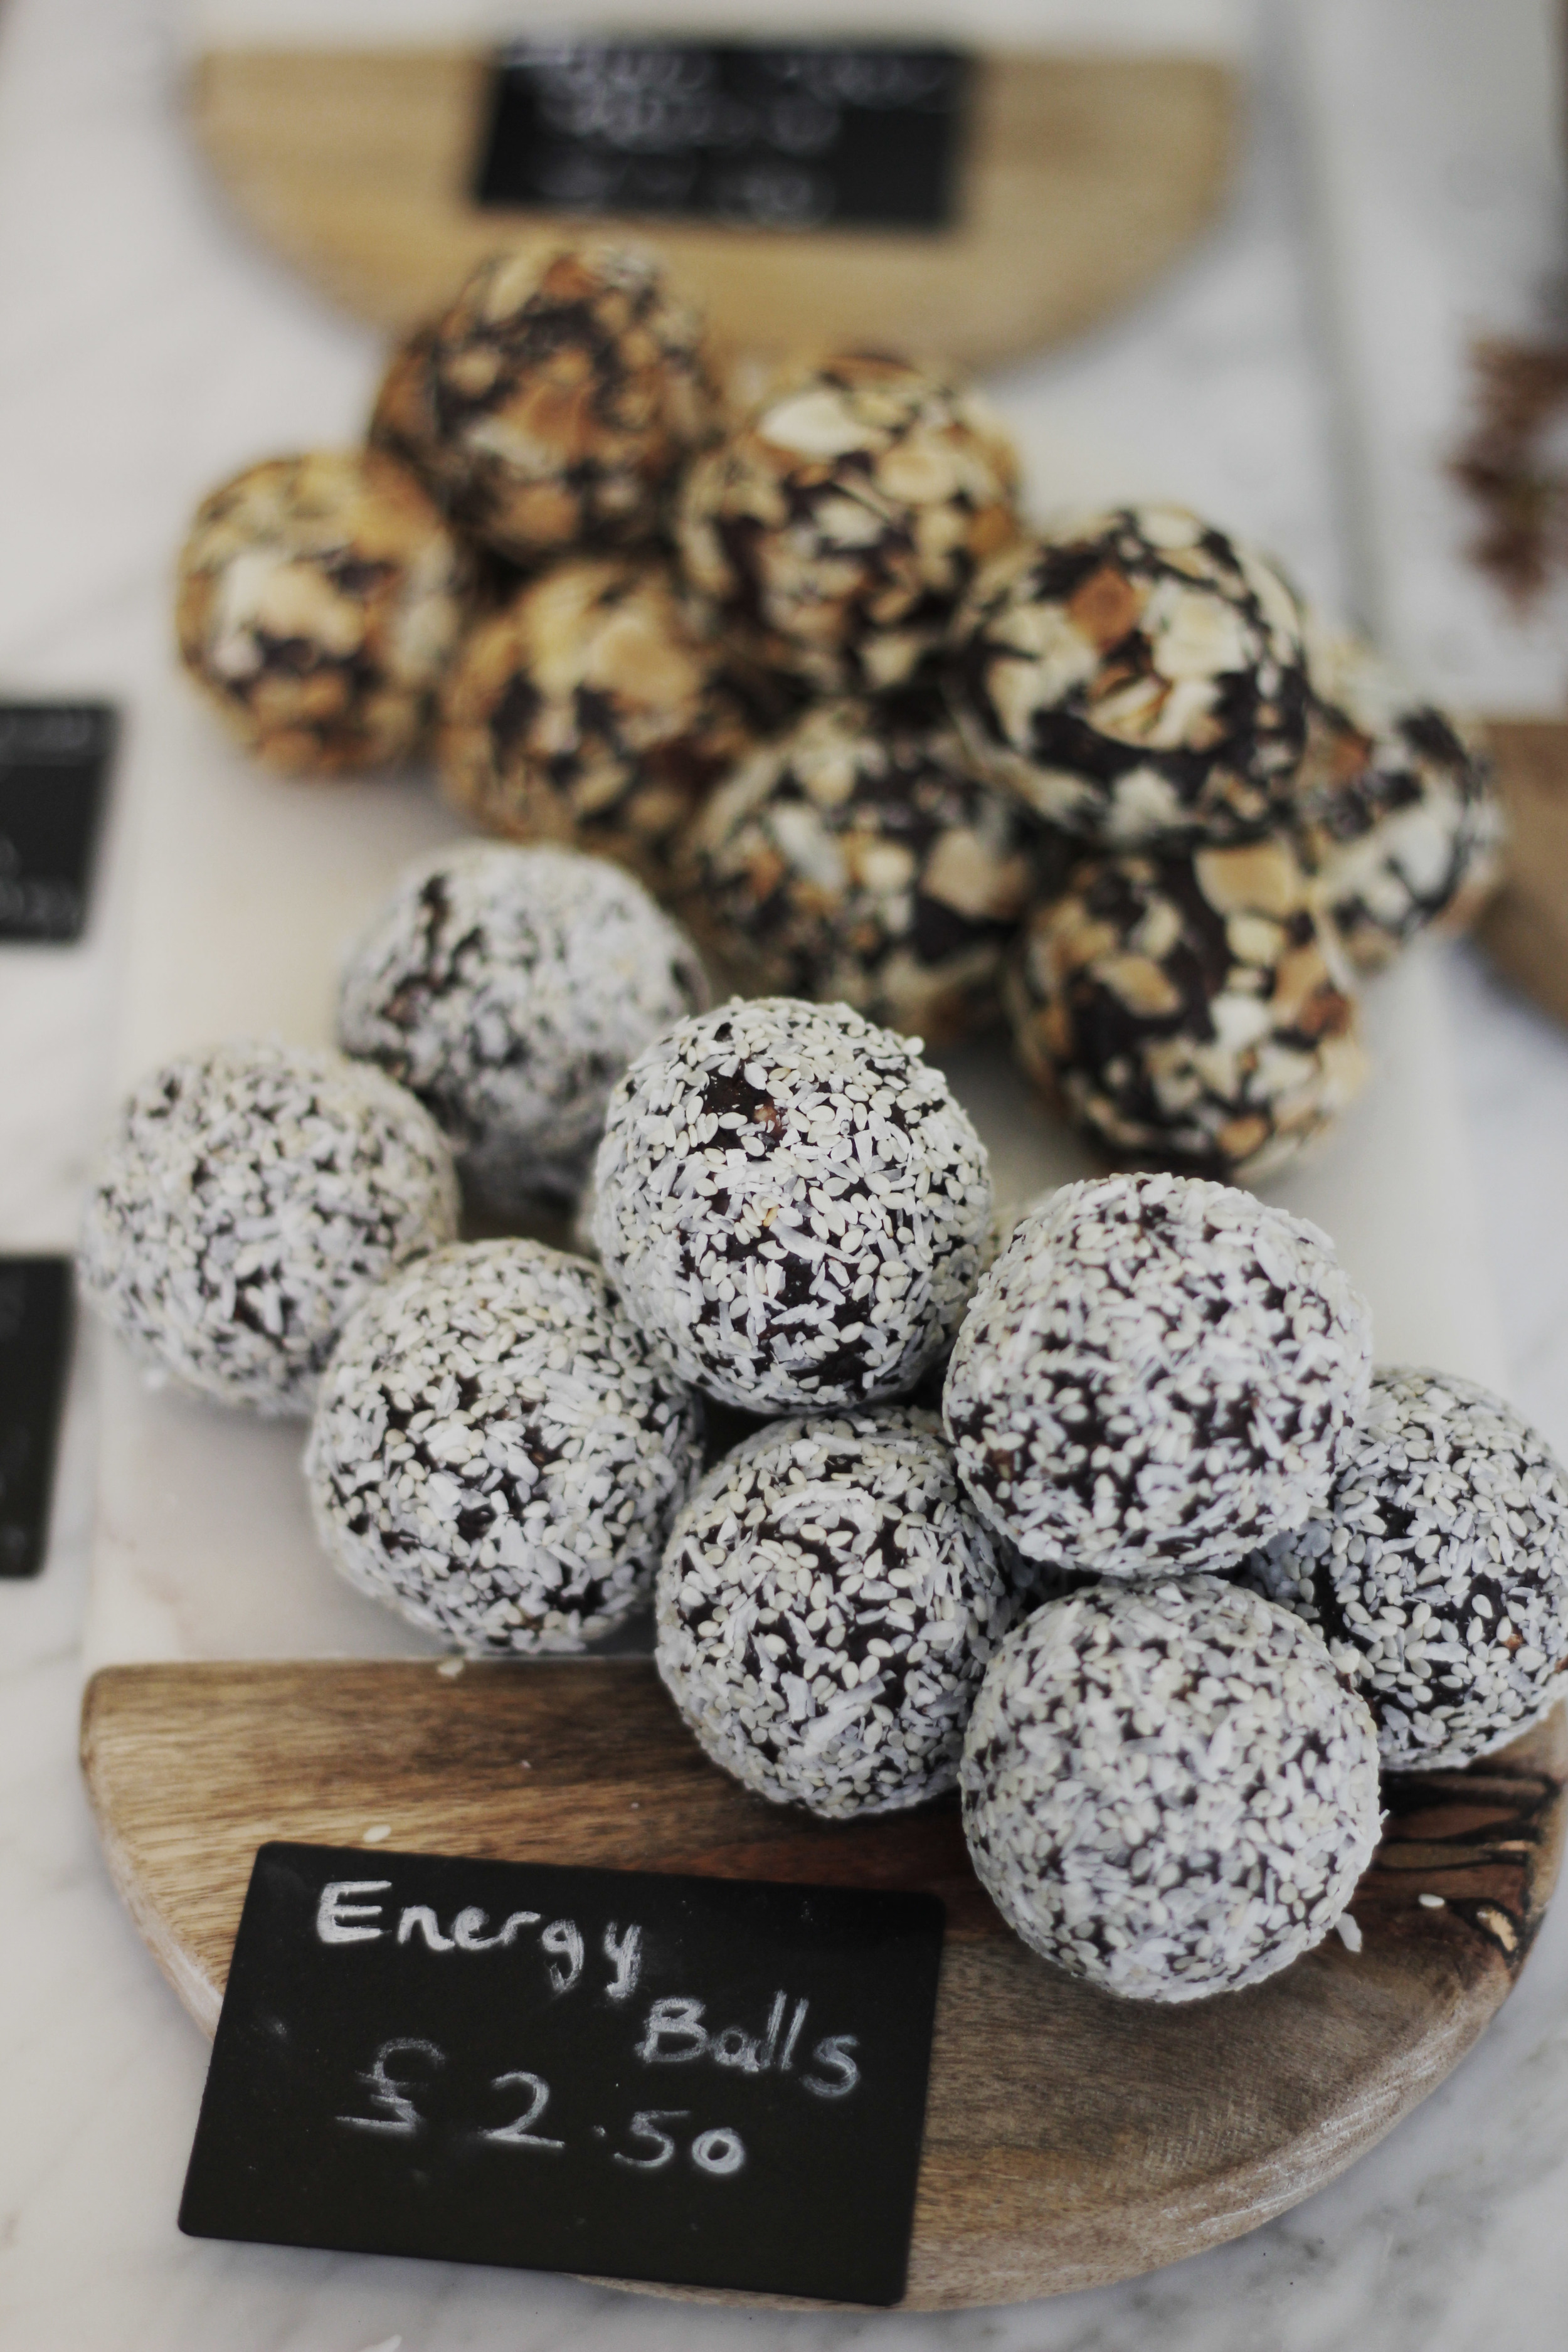 protein_balls_coffee_london_grind_marble